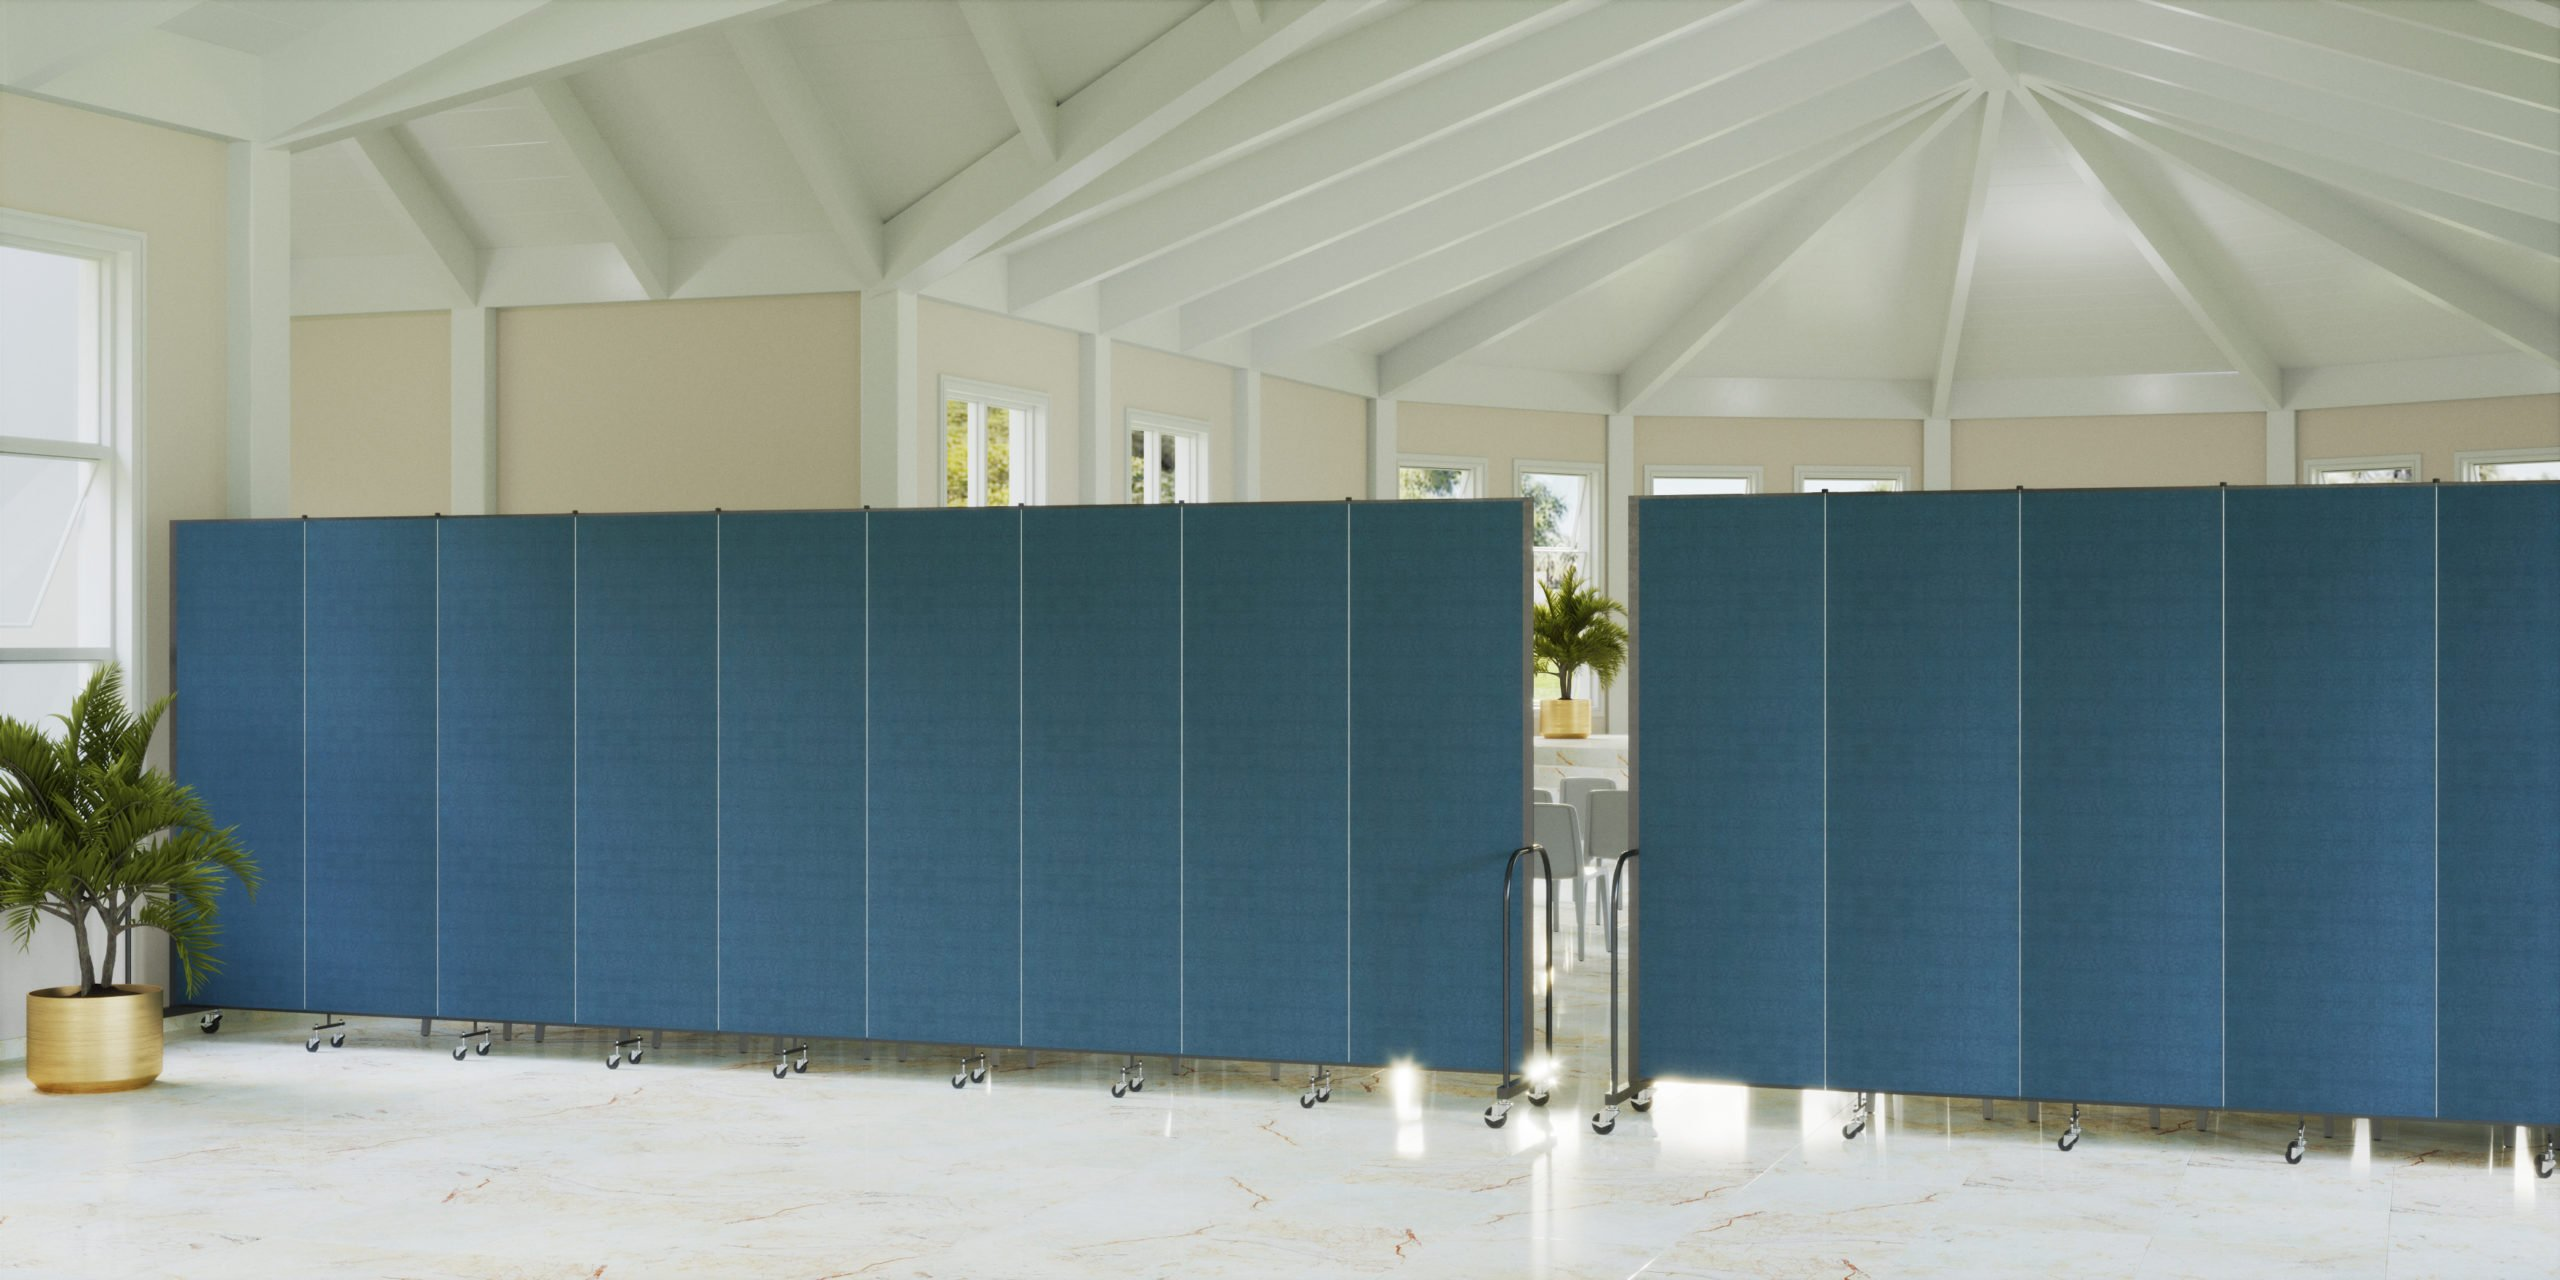 Two straight blue room dividers closing off a space for a church